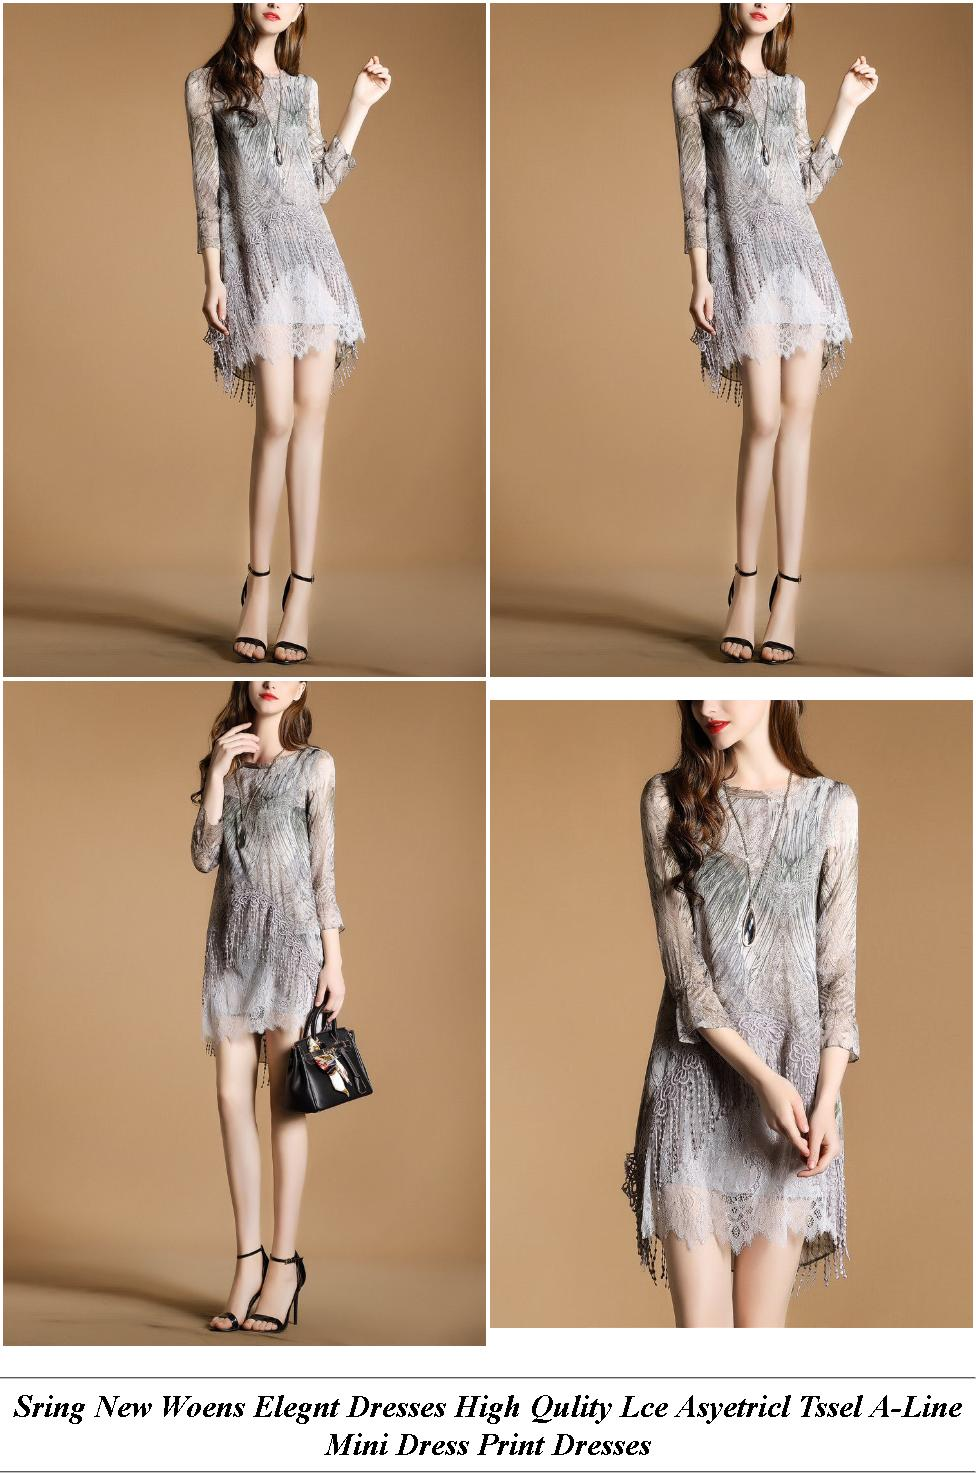 Dresses For Womens Macys - Top Selling Vintage Clothing Items - Clu Party Dresses Pinterest